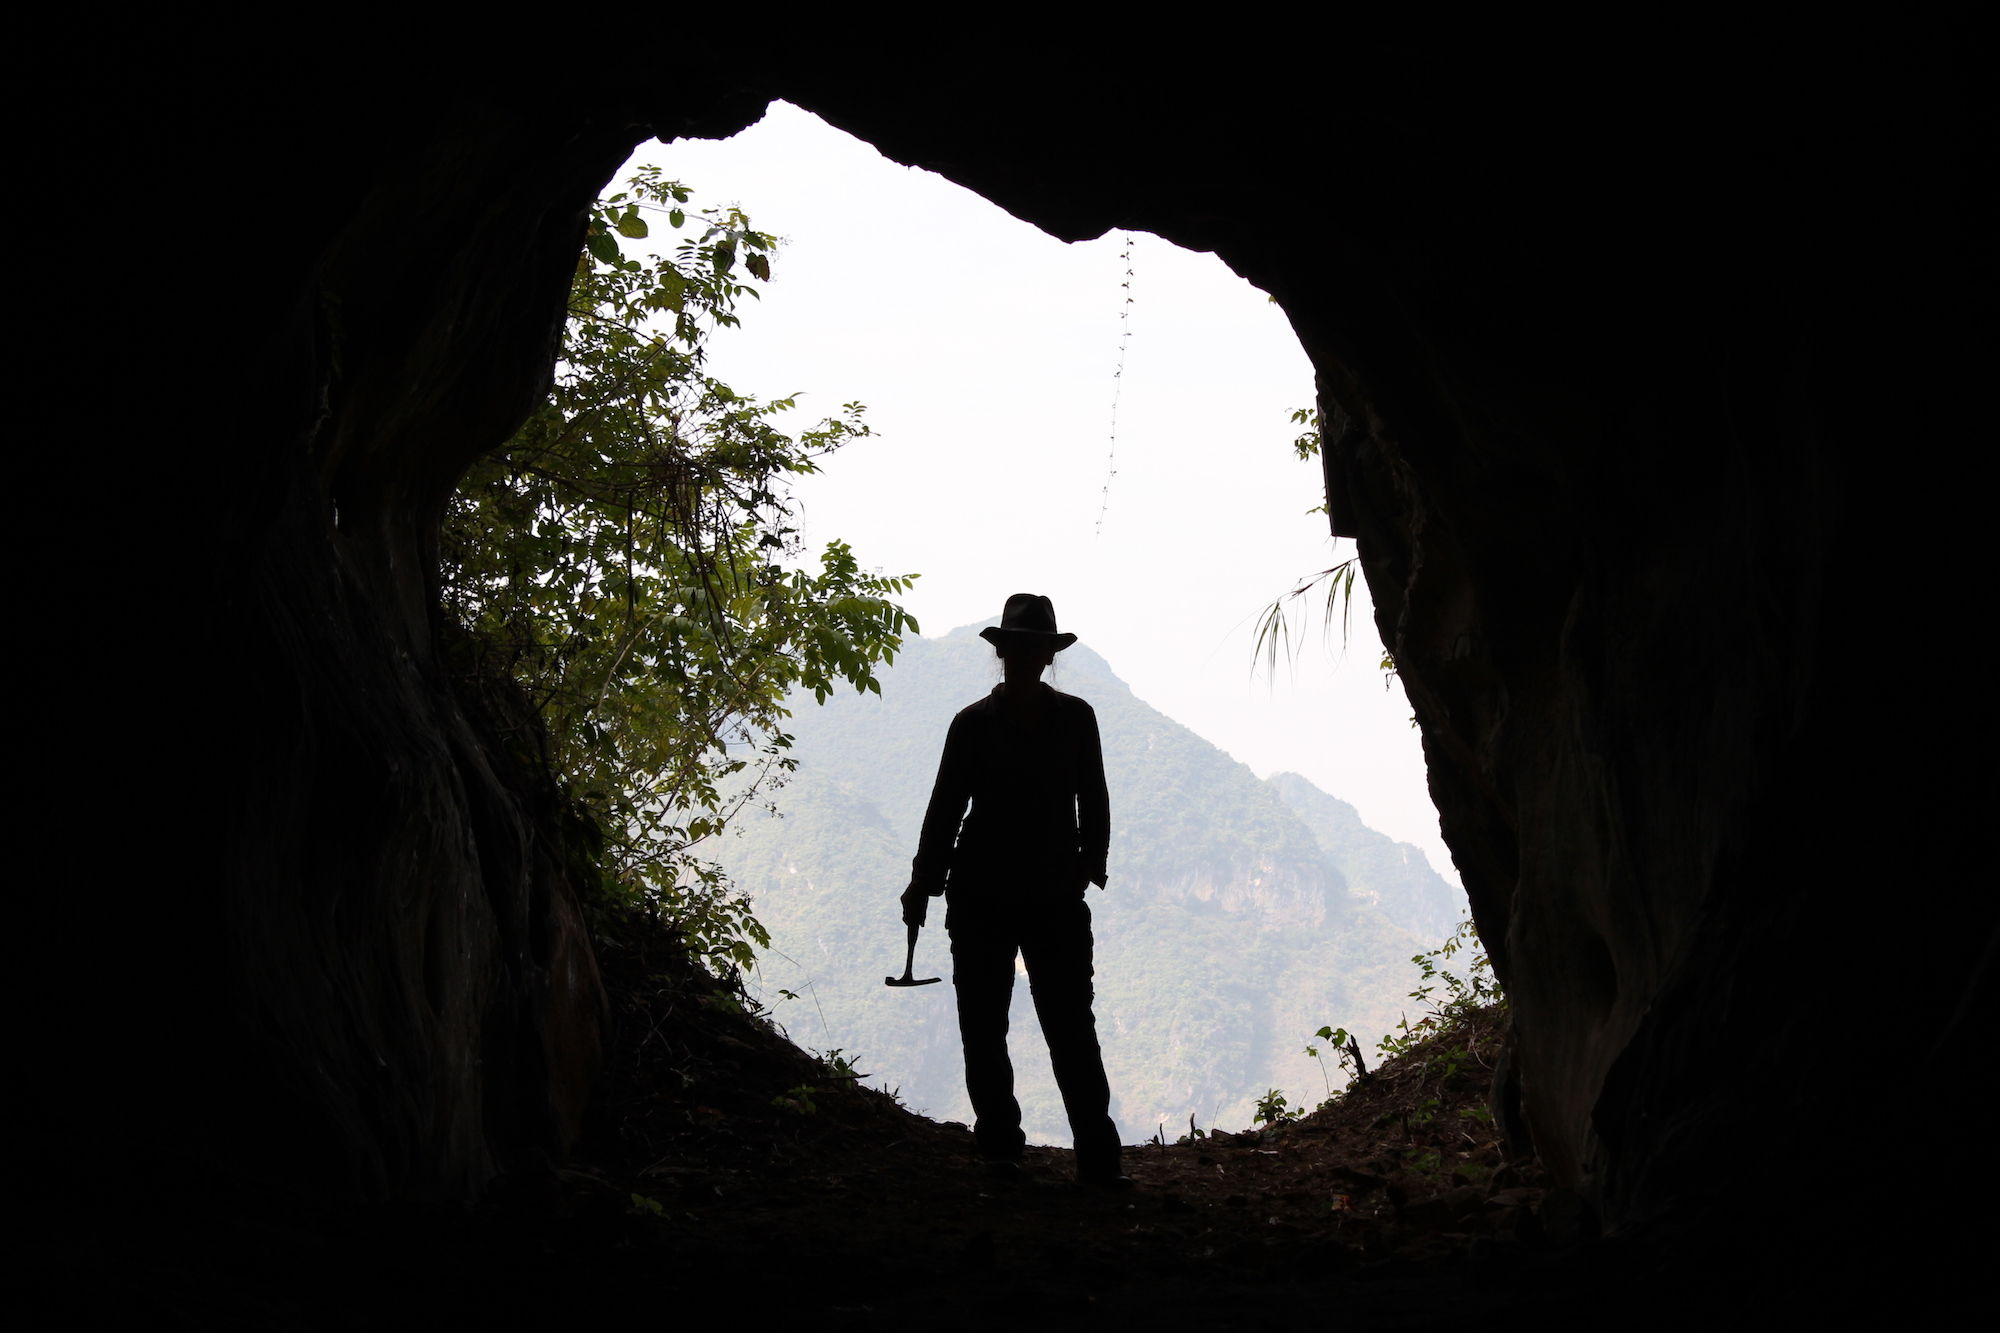 Searching for lost caves